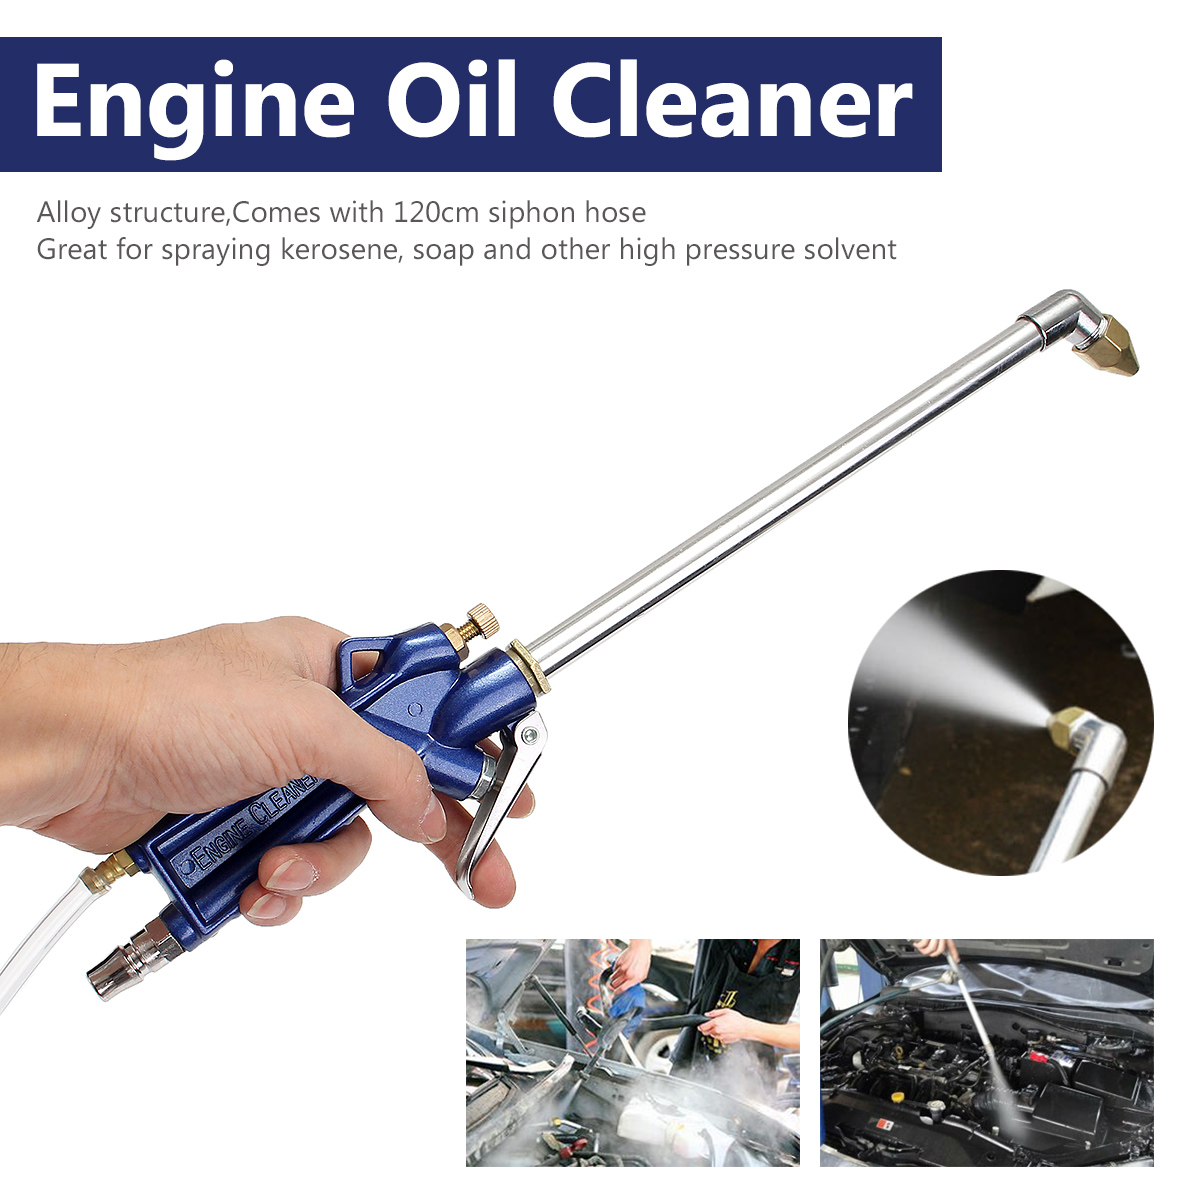 400mm Engine Oil Cleaner Tool Car Auto Water Cleaning Gun Pneumatic Tool with 120cm Hose Machinery Parts Alloy Engine Care